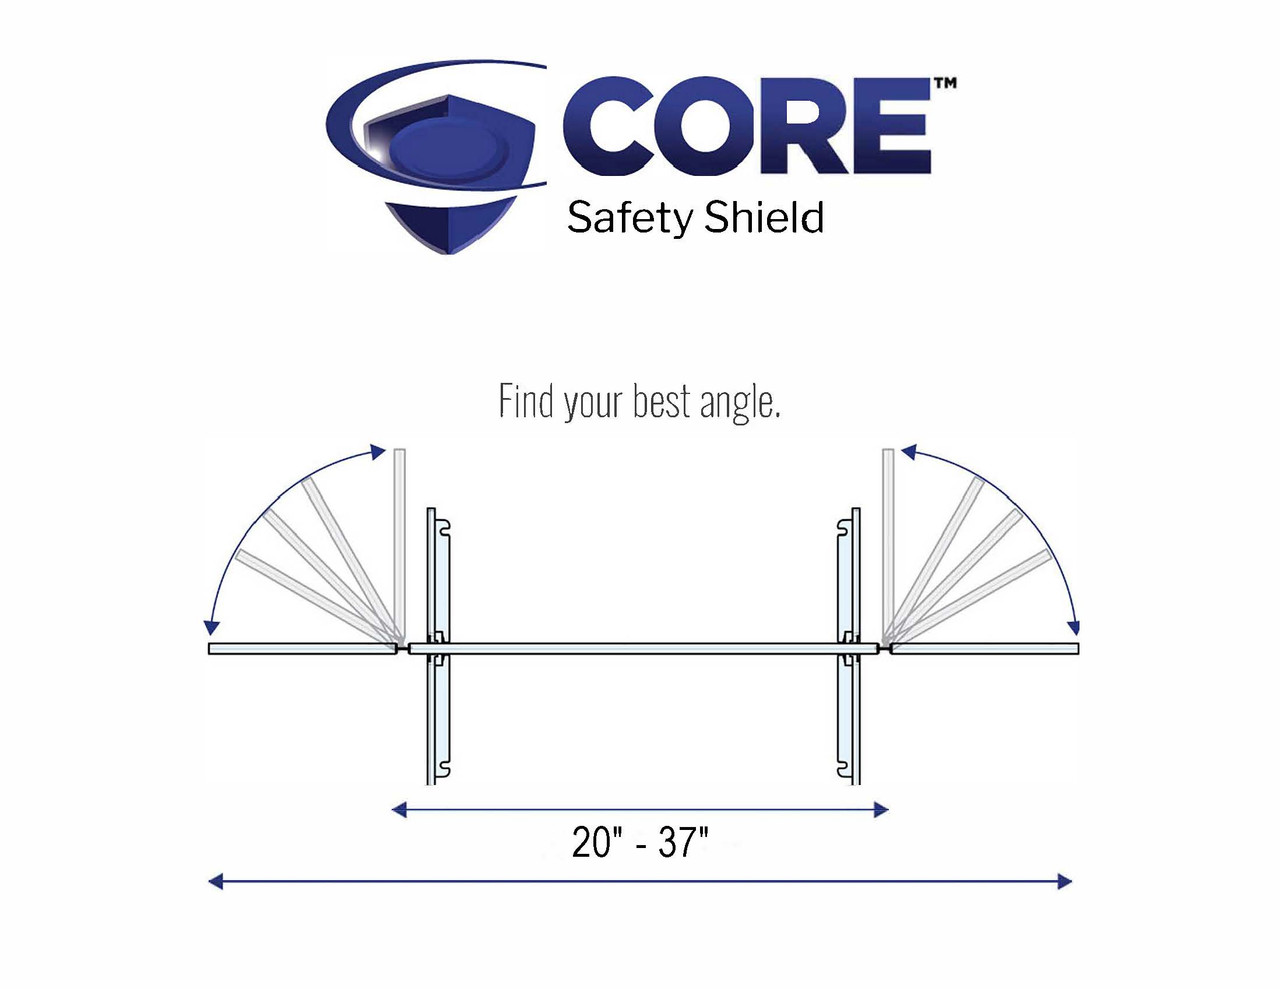 CORE™ Safety Shield